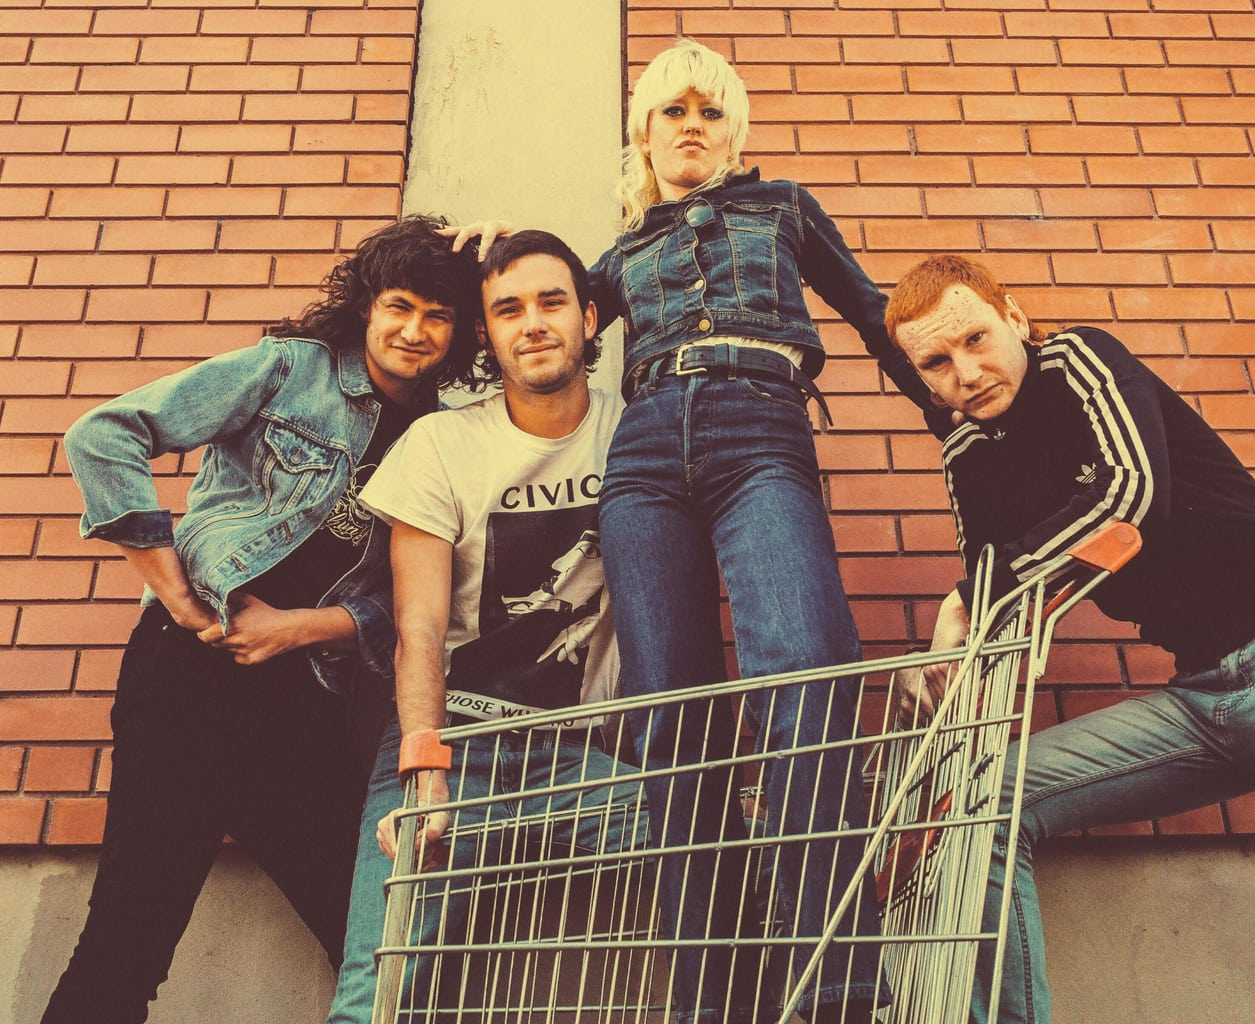 Band Amyl and the Sniffers posing for a photo with lead singer Amy in a shopping trolley